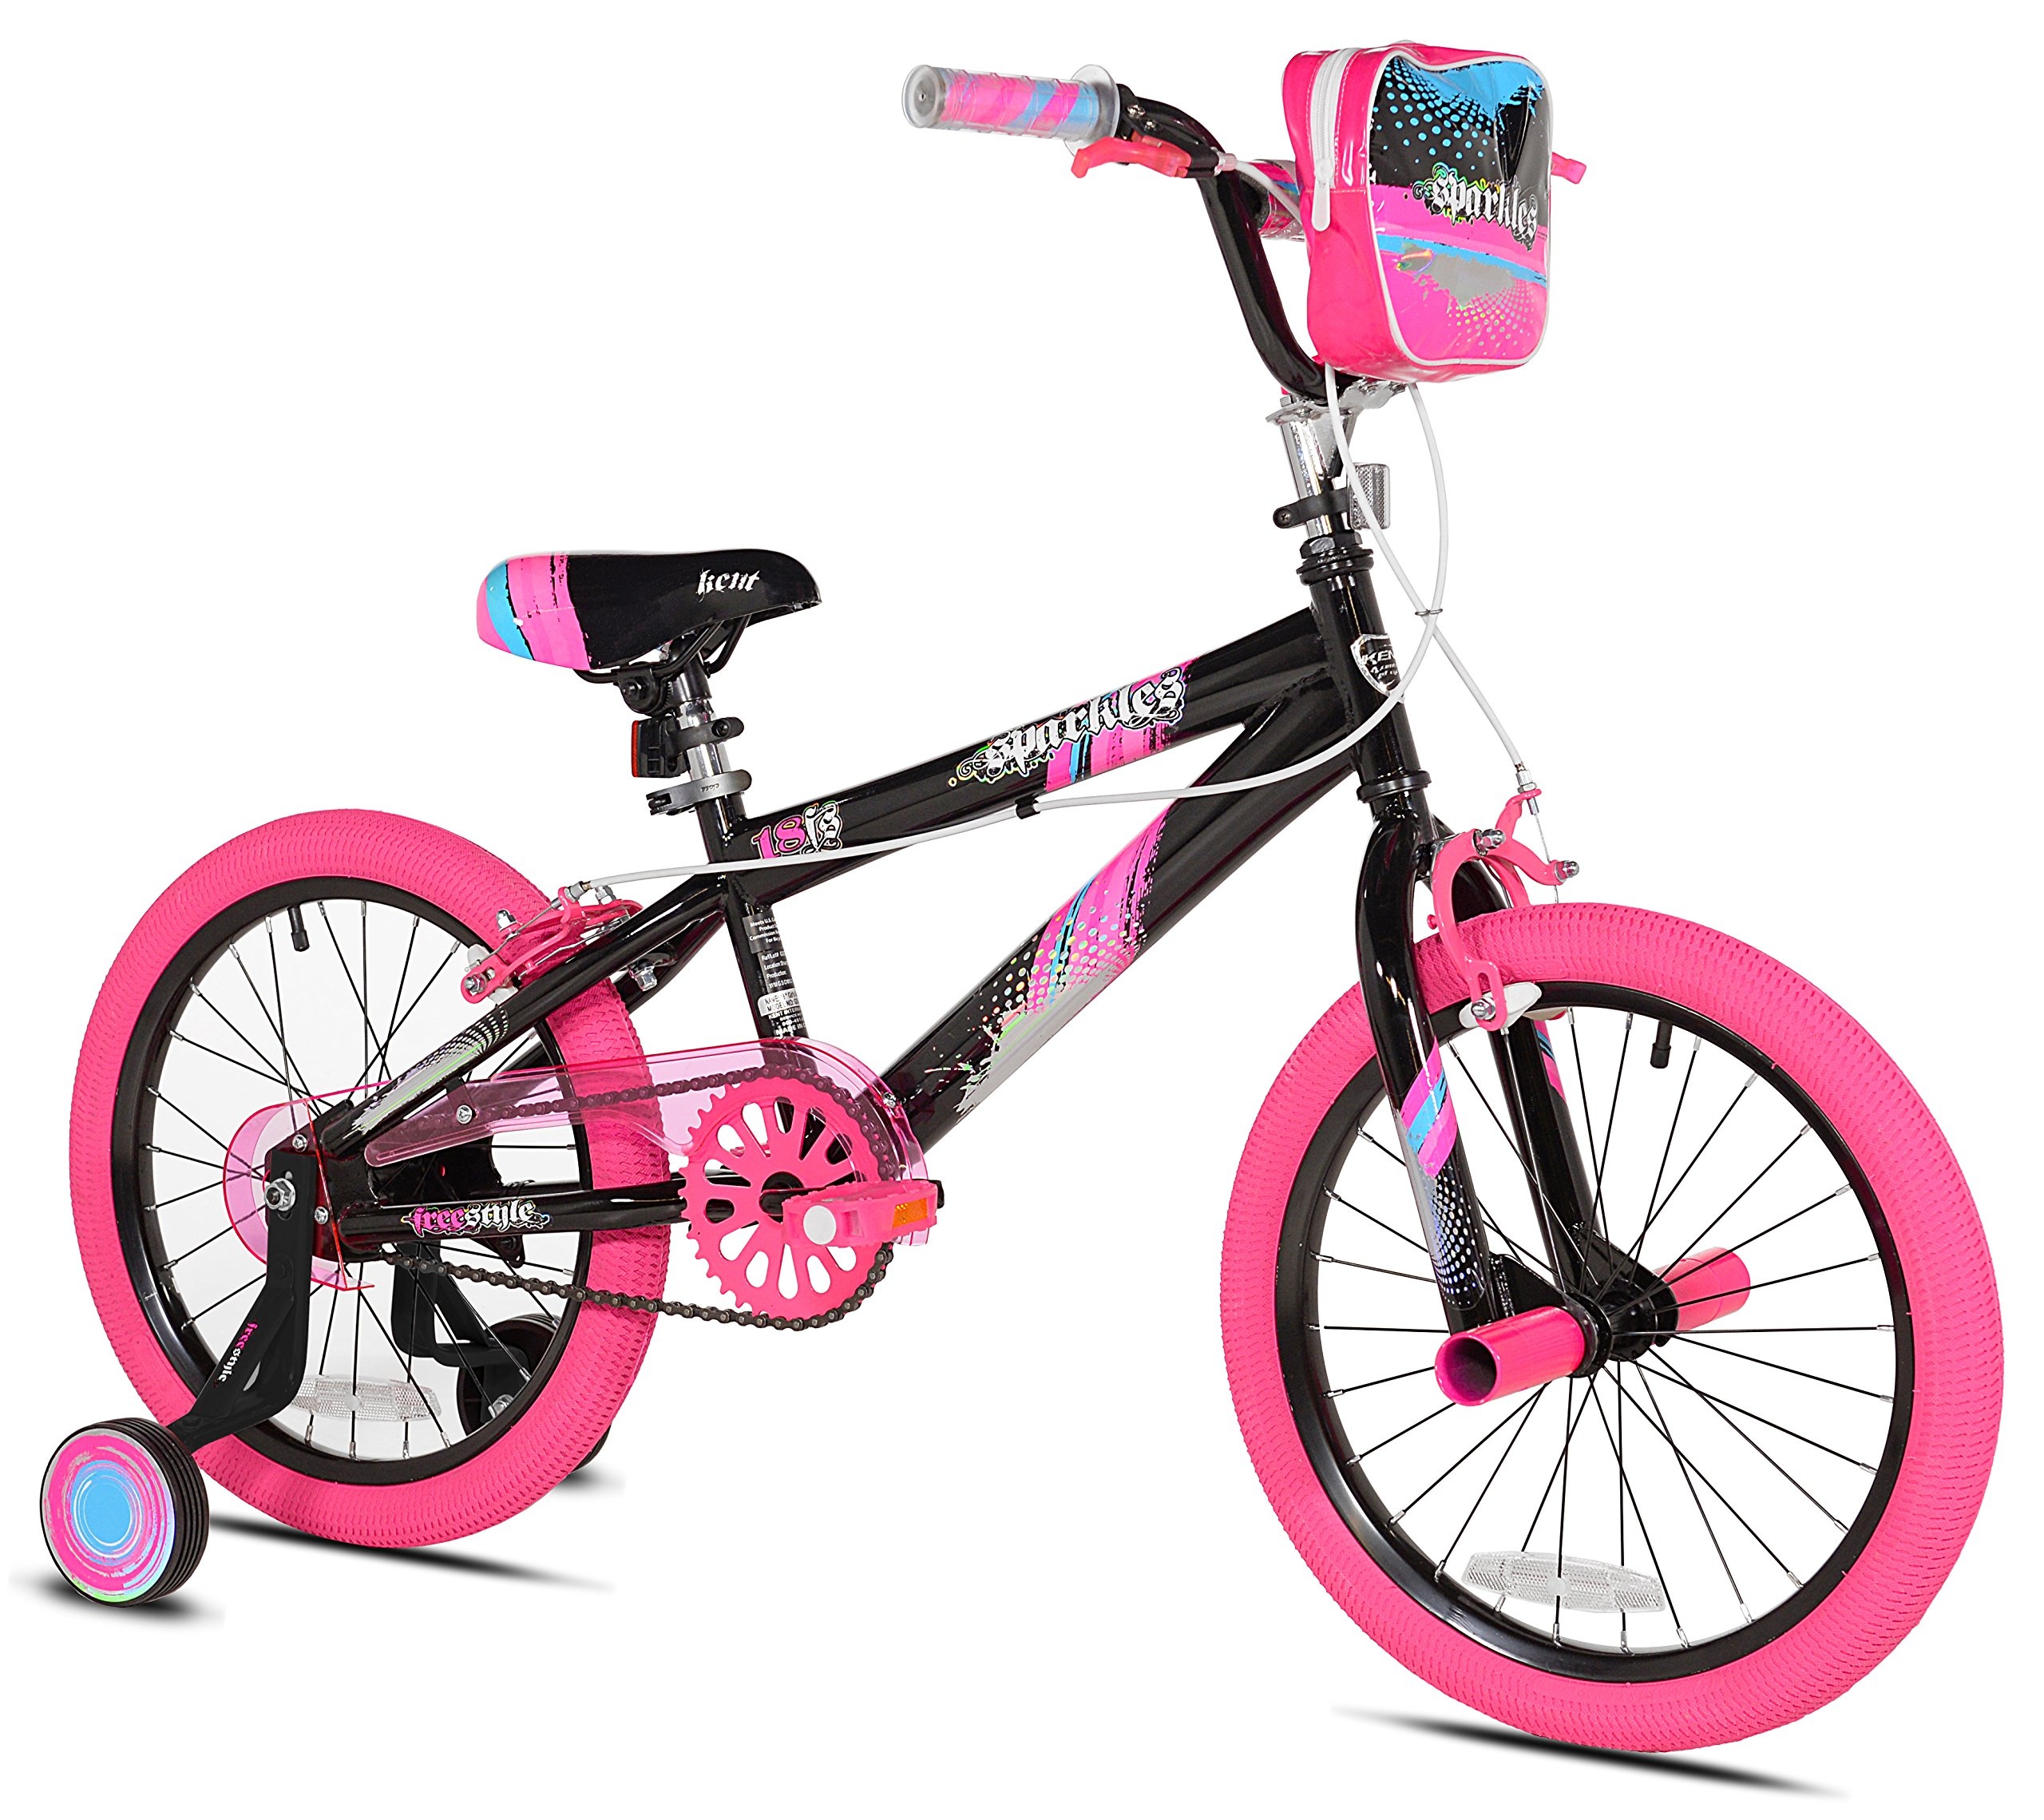 Kent 18'' Sparkles Girls Bike, Black/Pink Summer Toy Kids Outdoor Play by Kent 18'' Sparkles (Image #1)